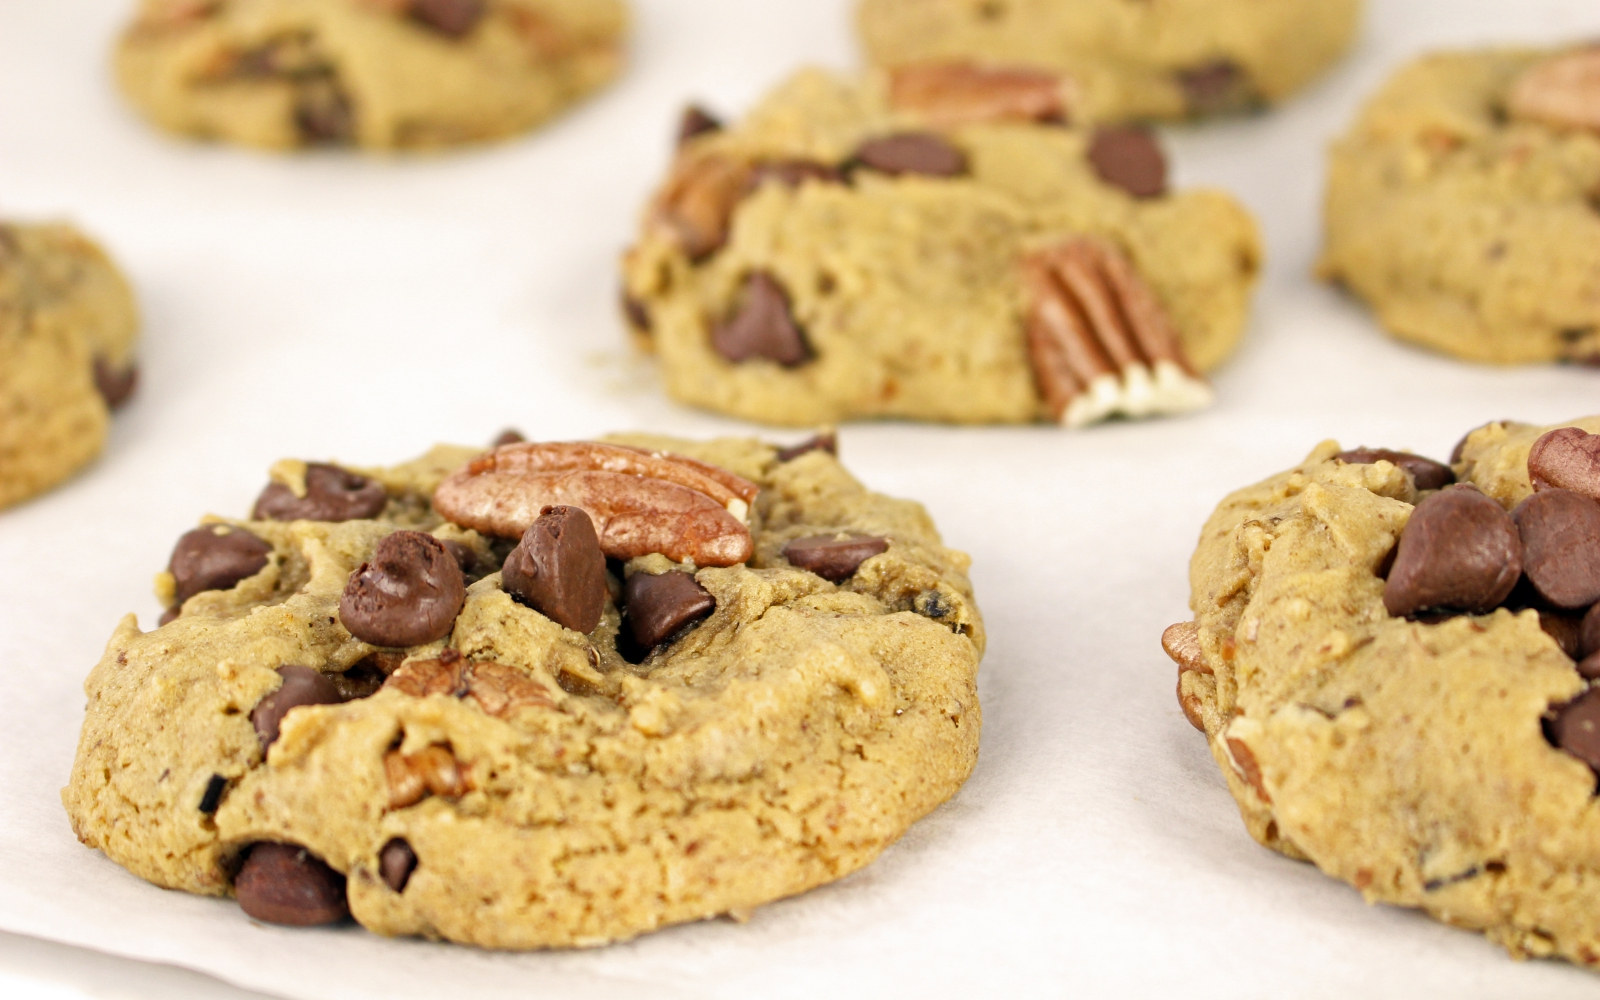 Butter Pecan Cookies with chocolate chips